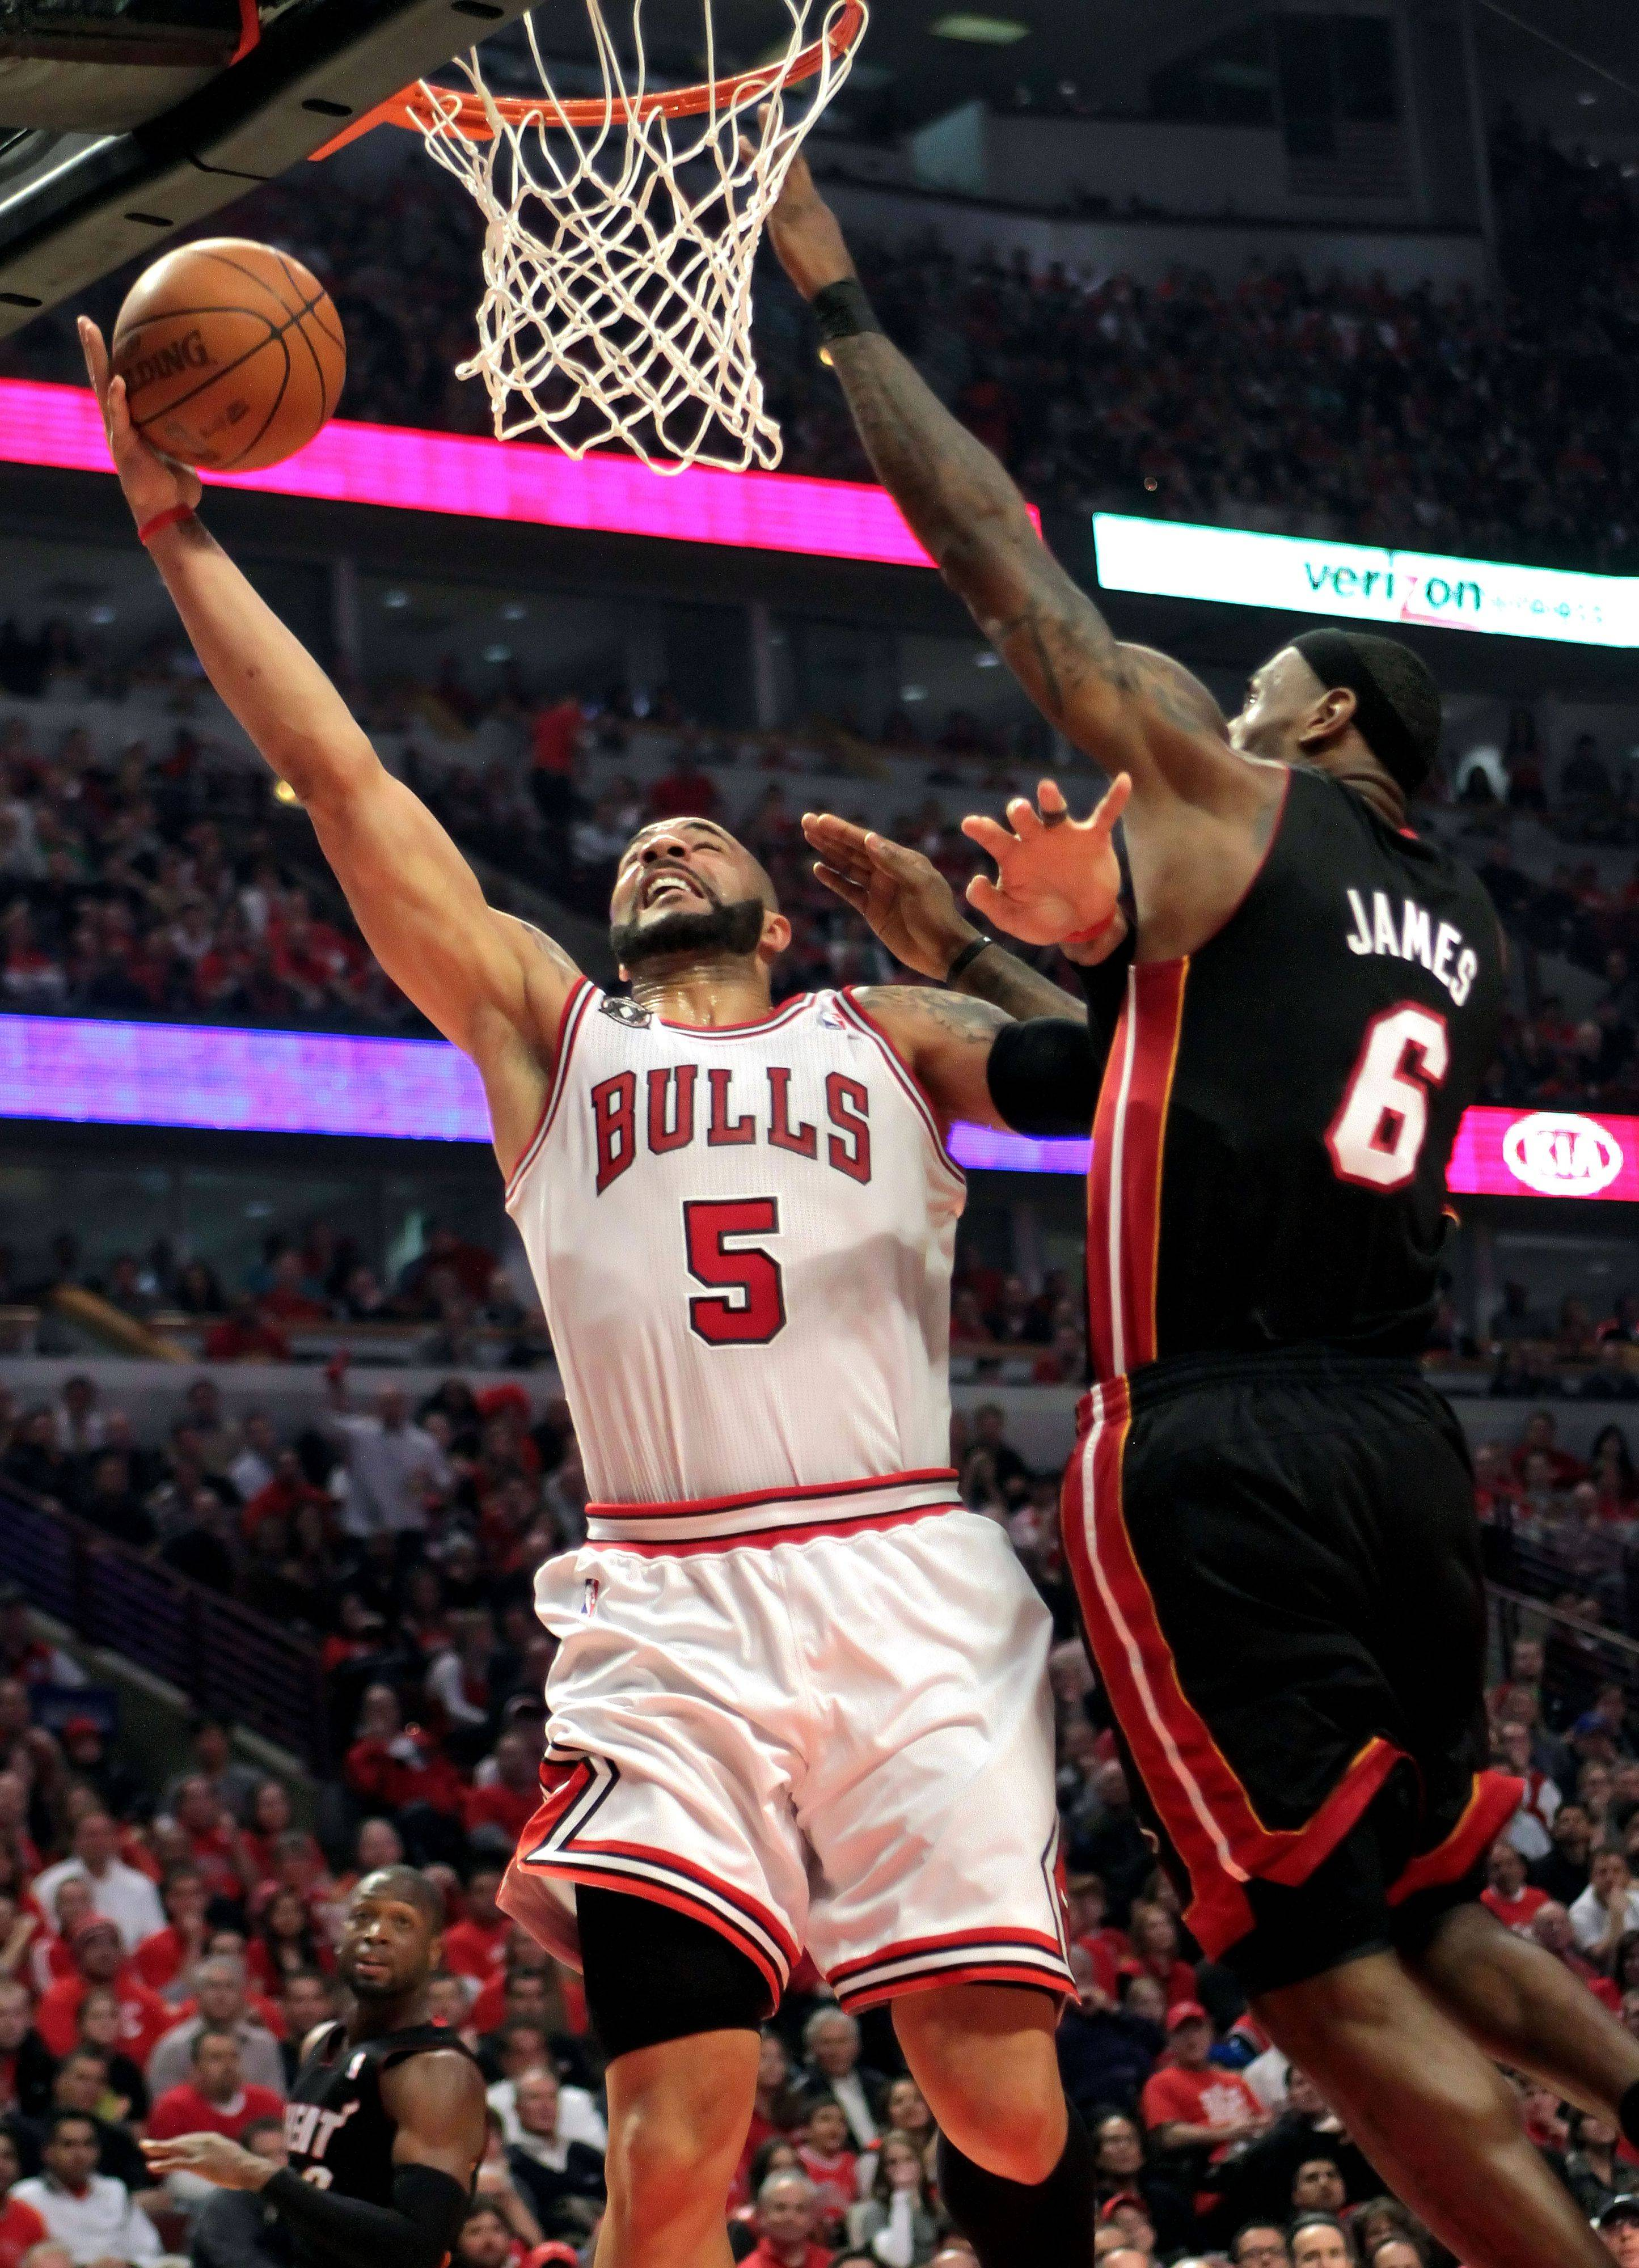 Chicago Bulls power forward Carlos Boozer drives on Miami Heat small forward LeBron James during the first quarter.